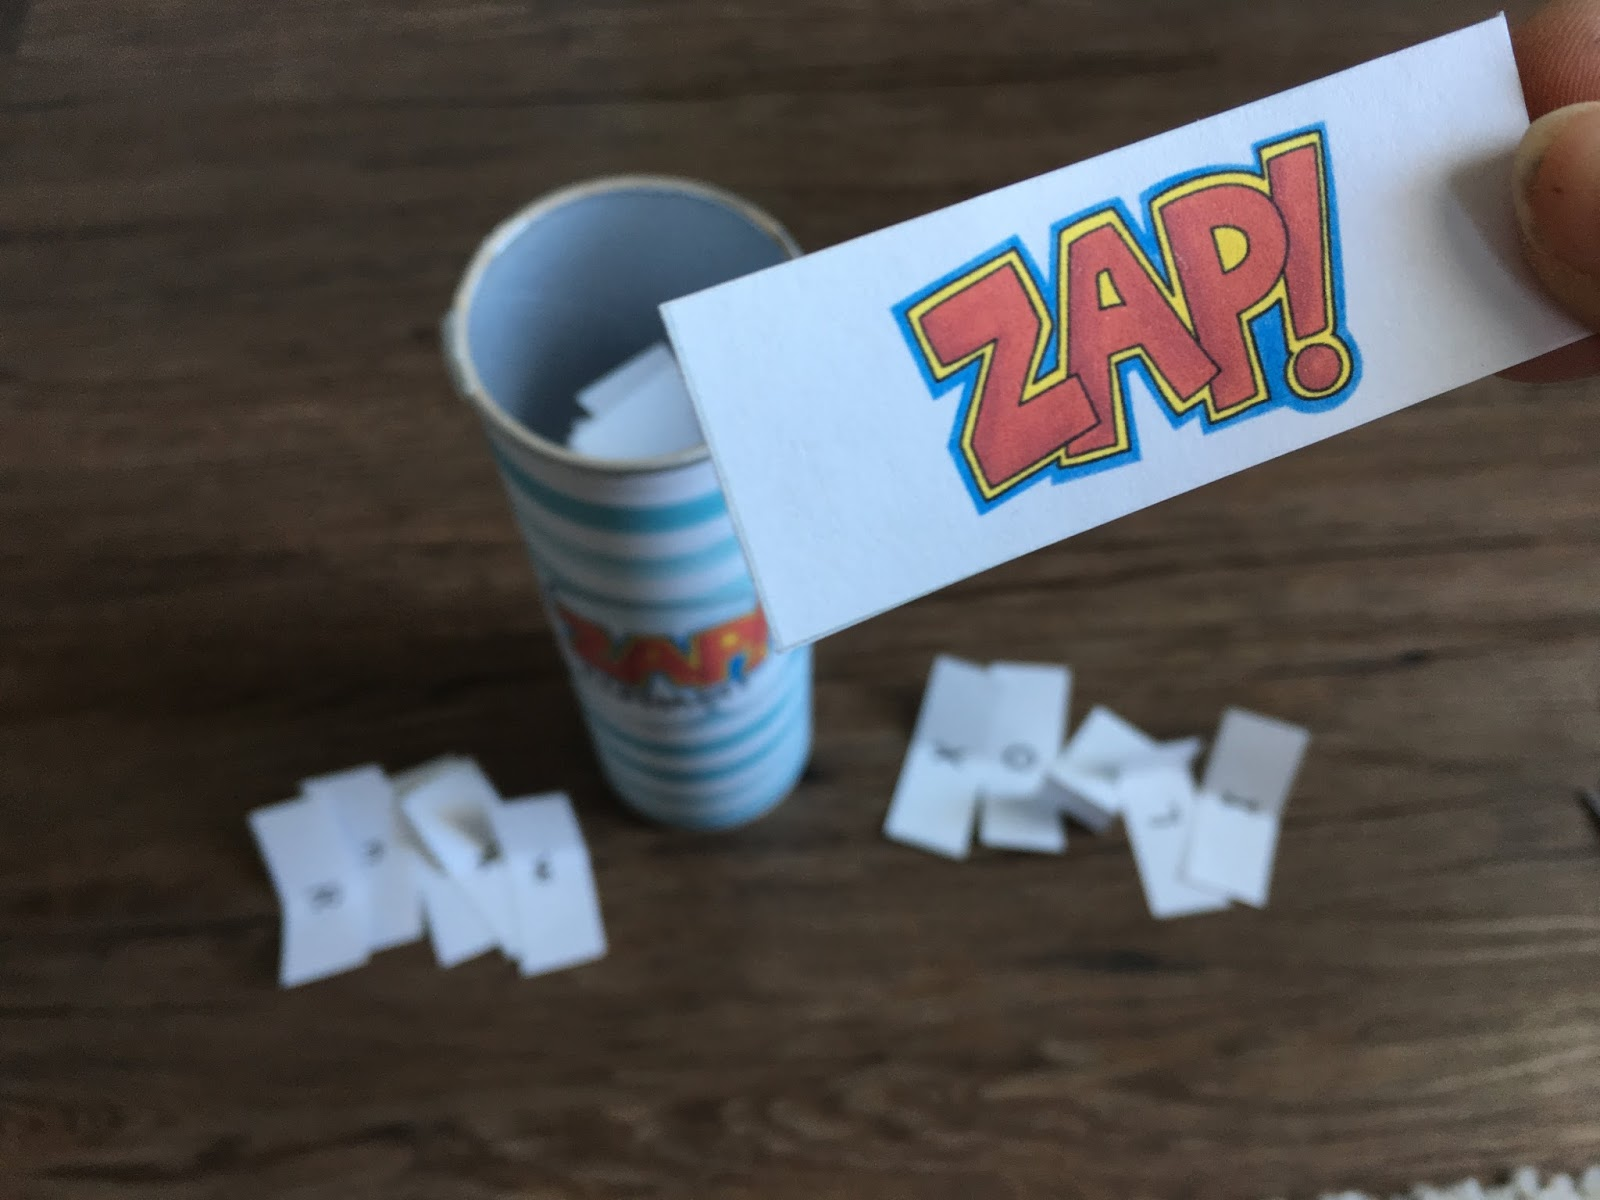 Minimalist Classroom Noise ~ Zap literacy games in the classroom a minimalist teacher